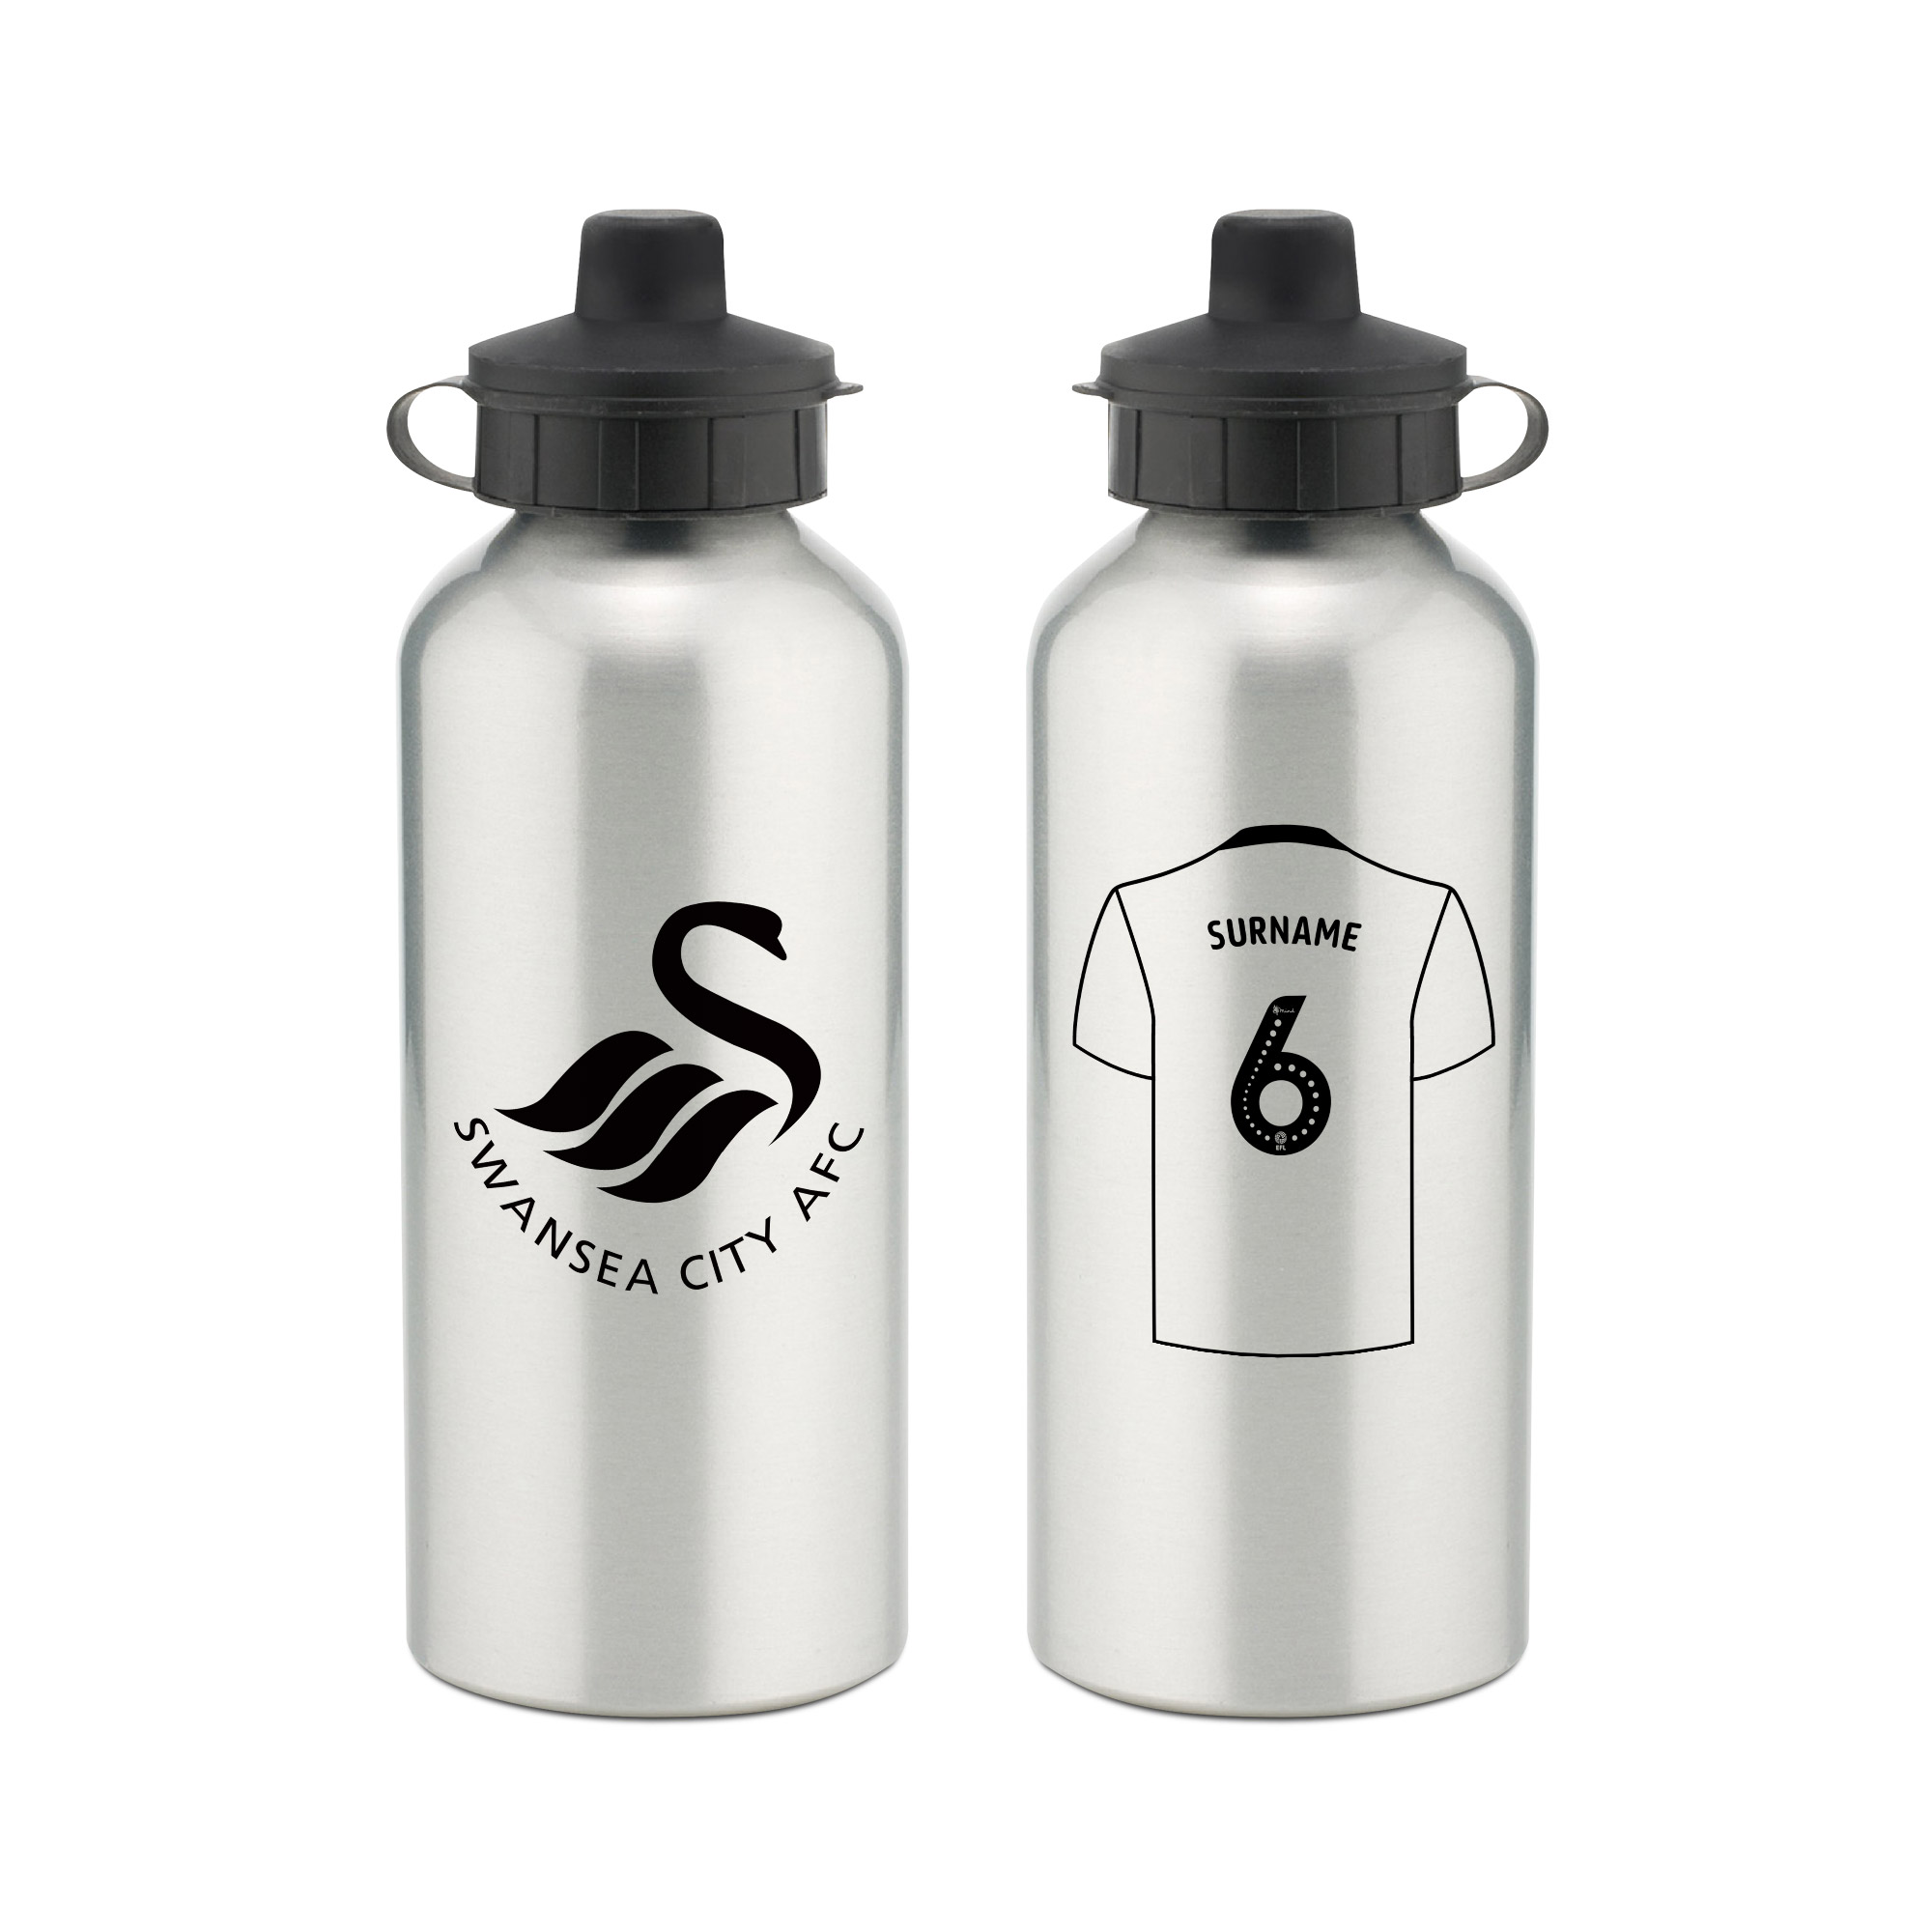 Swansea City AFC Aluminium Water Bottle